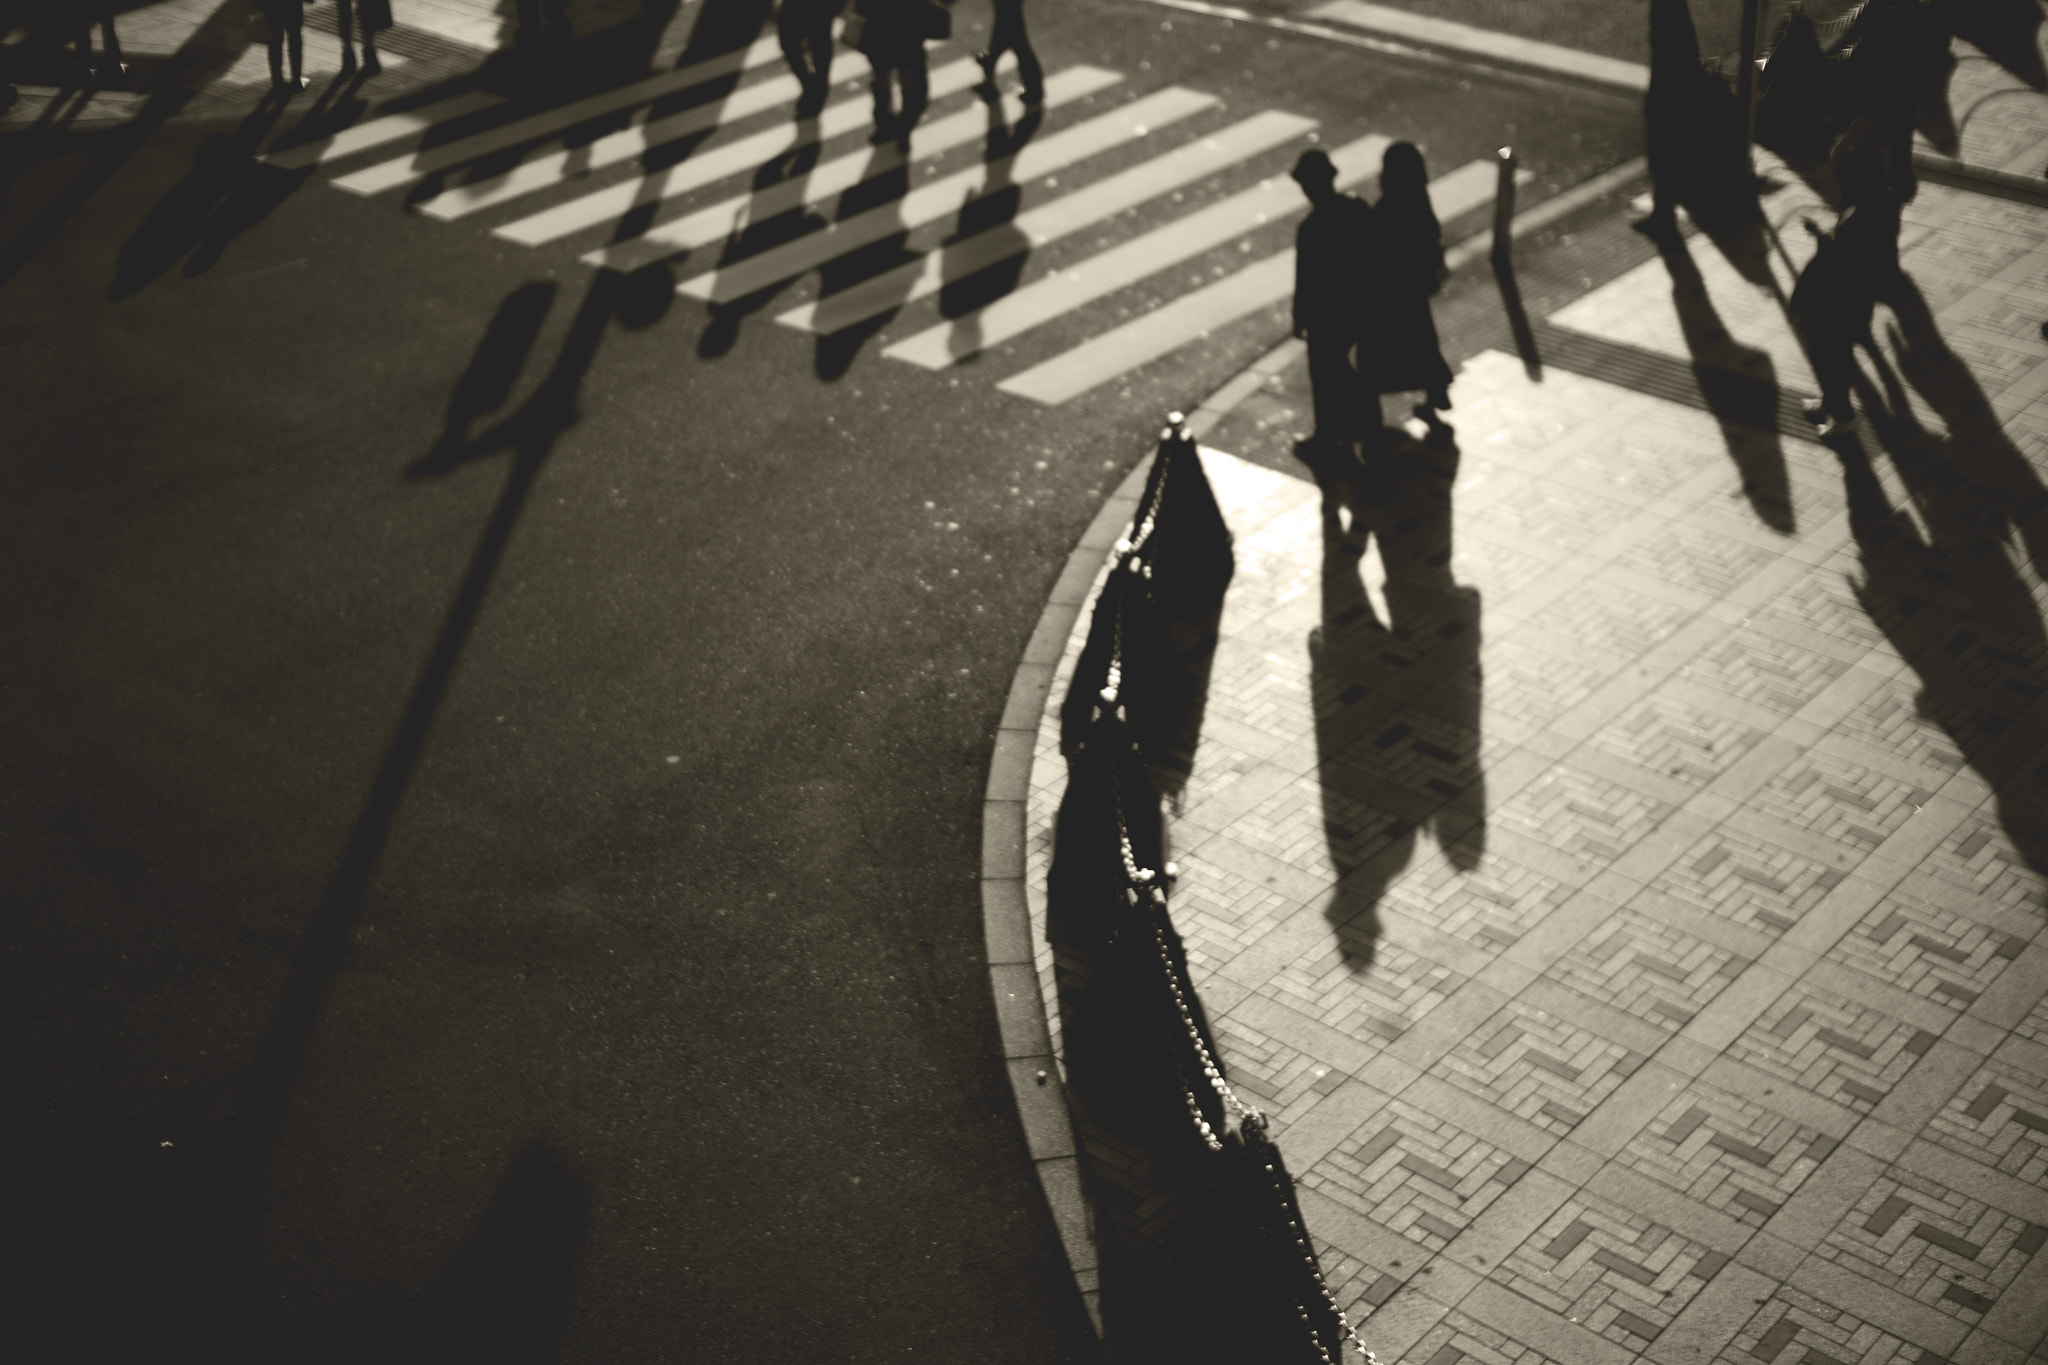 Photograph street and shadows by Mark Esguerra on 500px